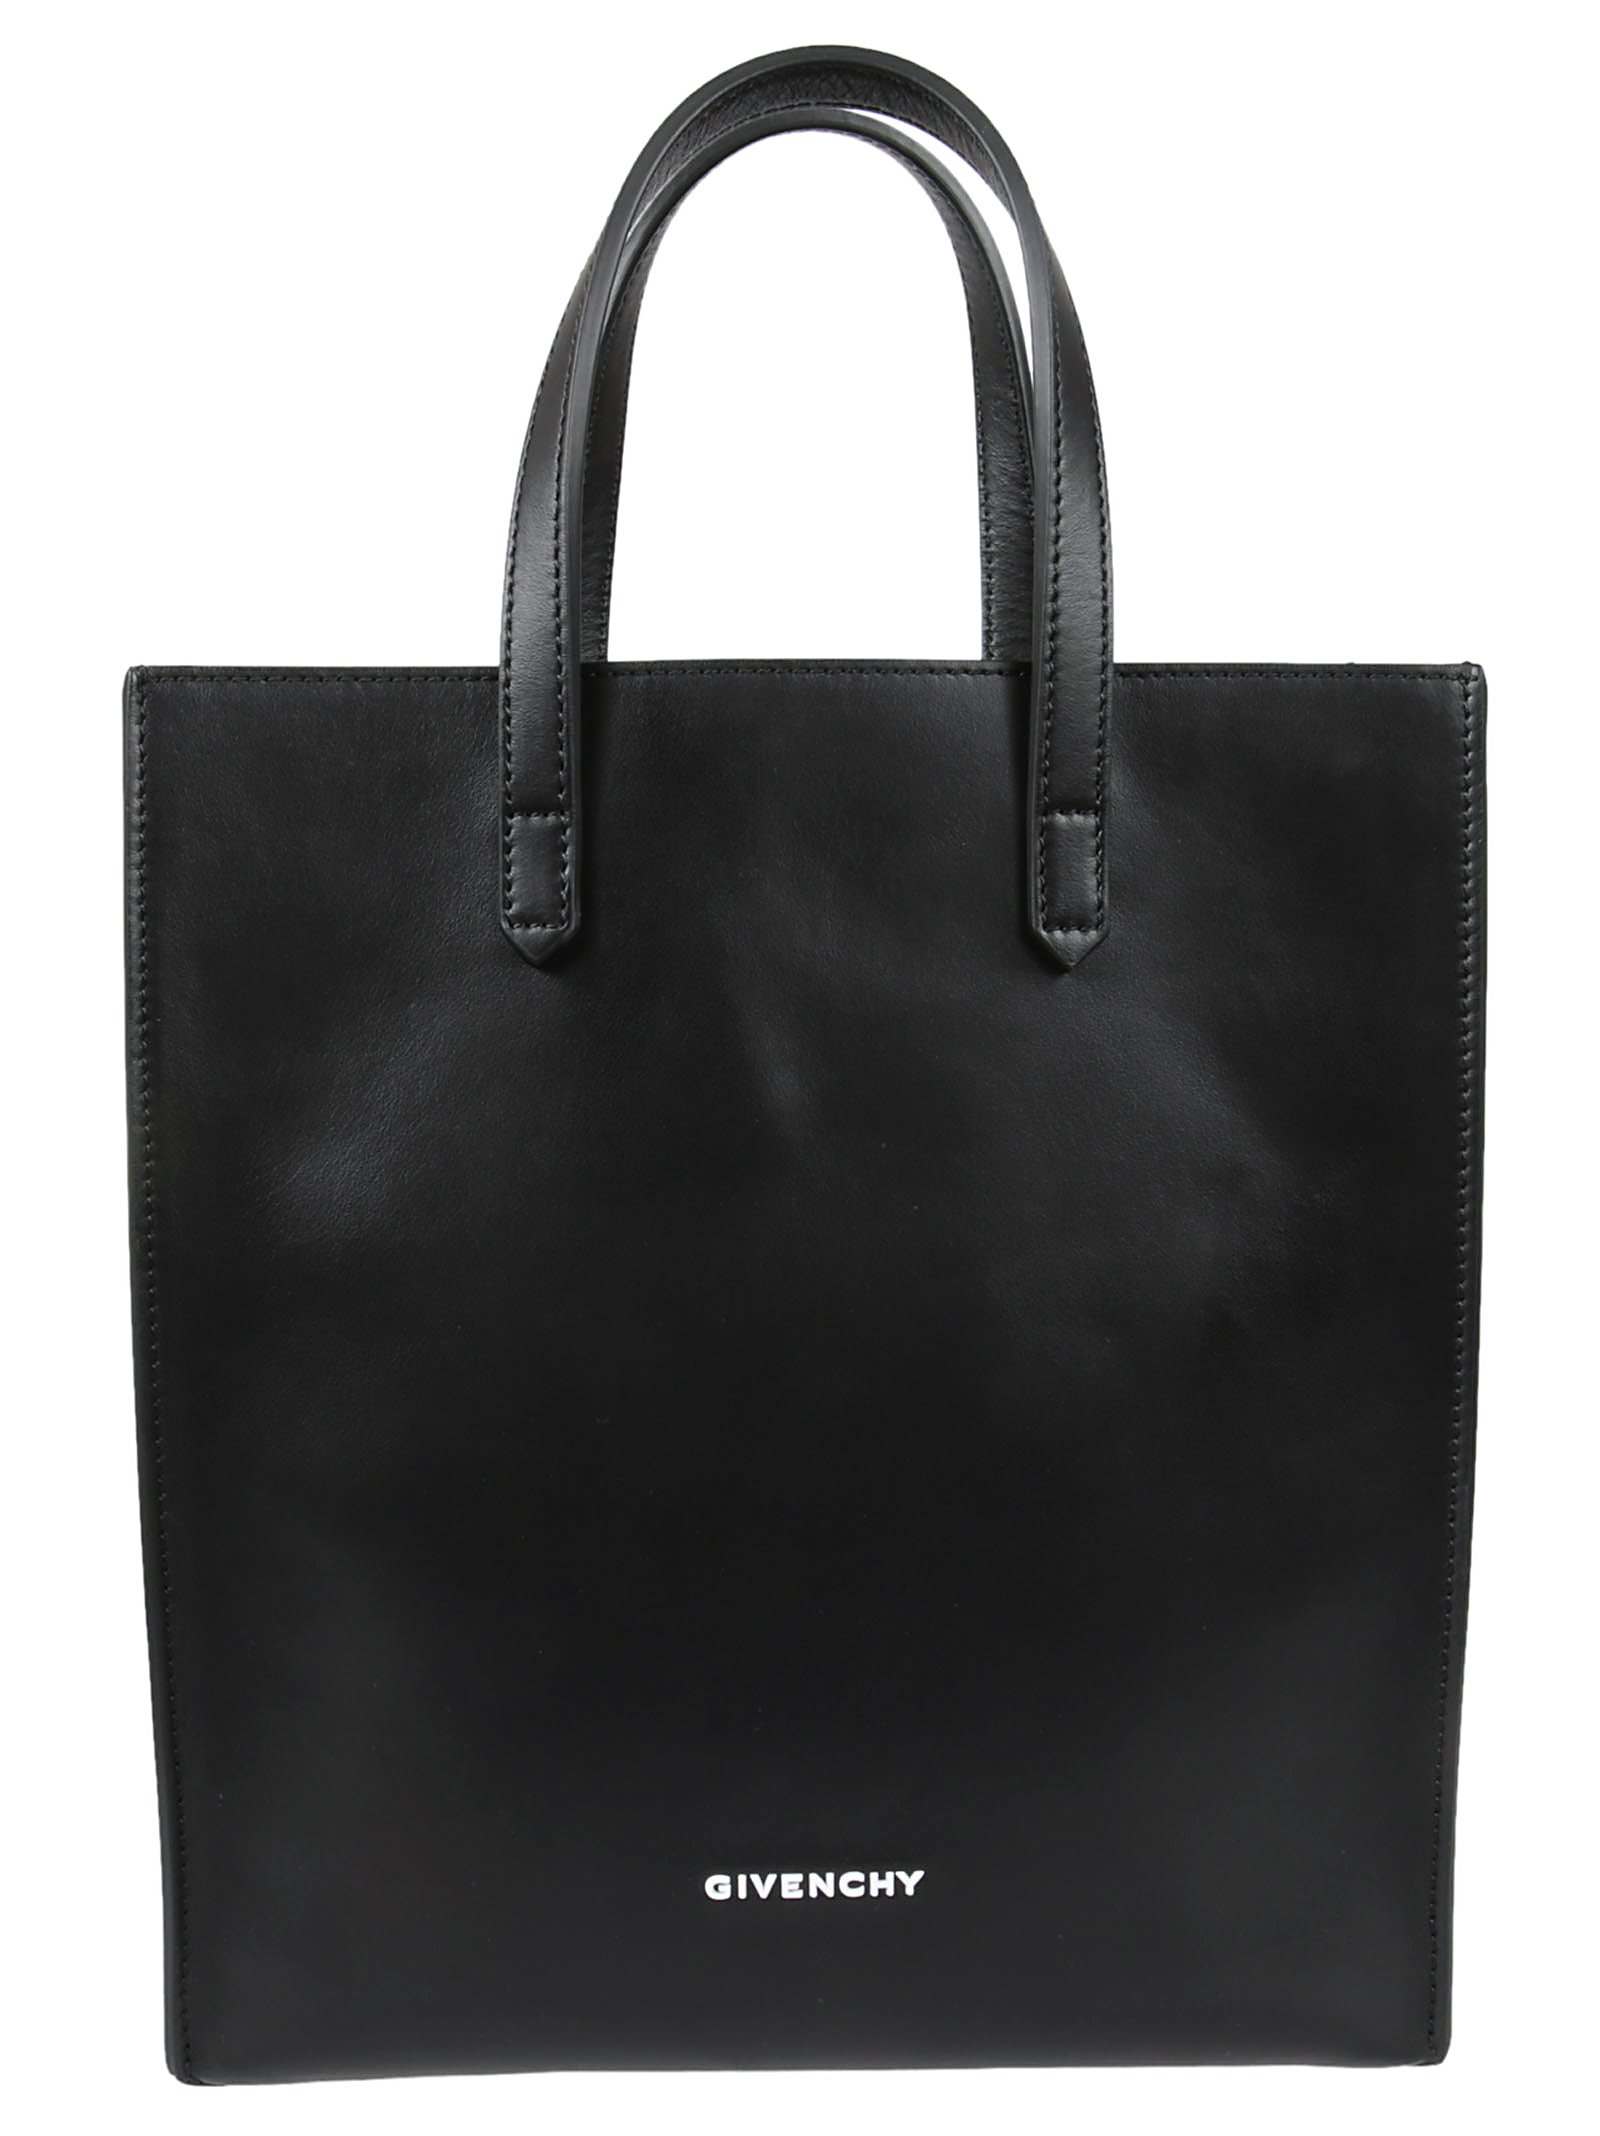 Givenchy Givenchy Stargate Shopper Bag